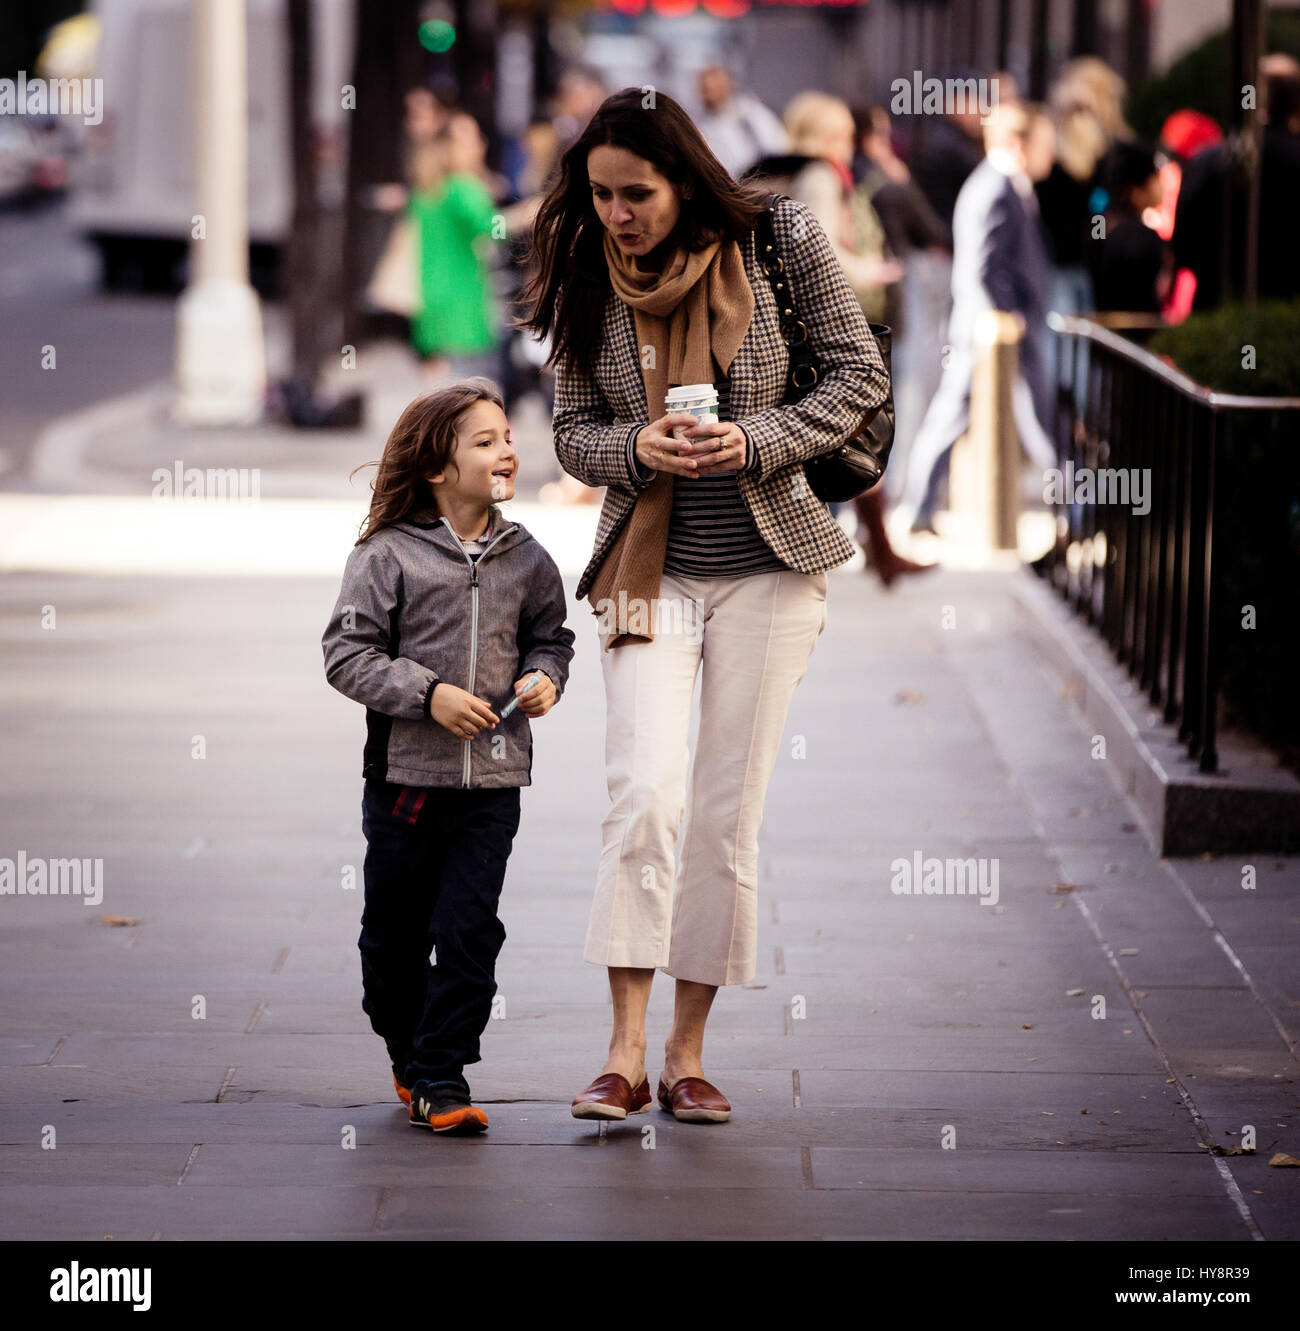 A mother walks on the streets of Manhattan along with her daughter in what appears to be a beautiful mom-daughter Stock Photo